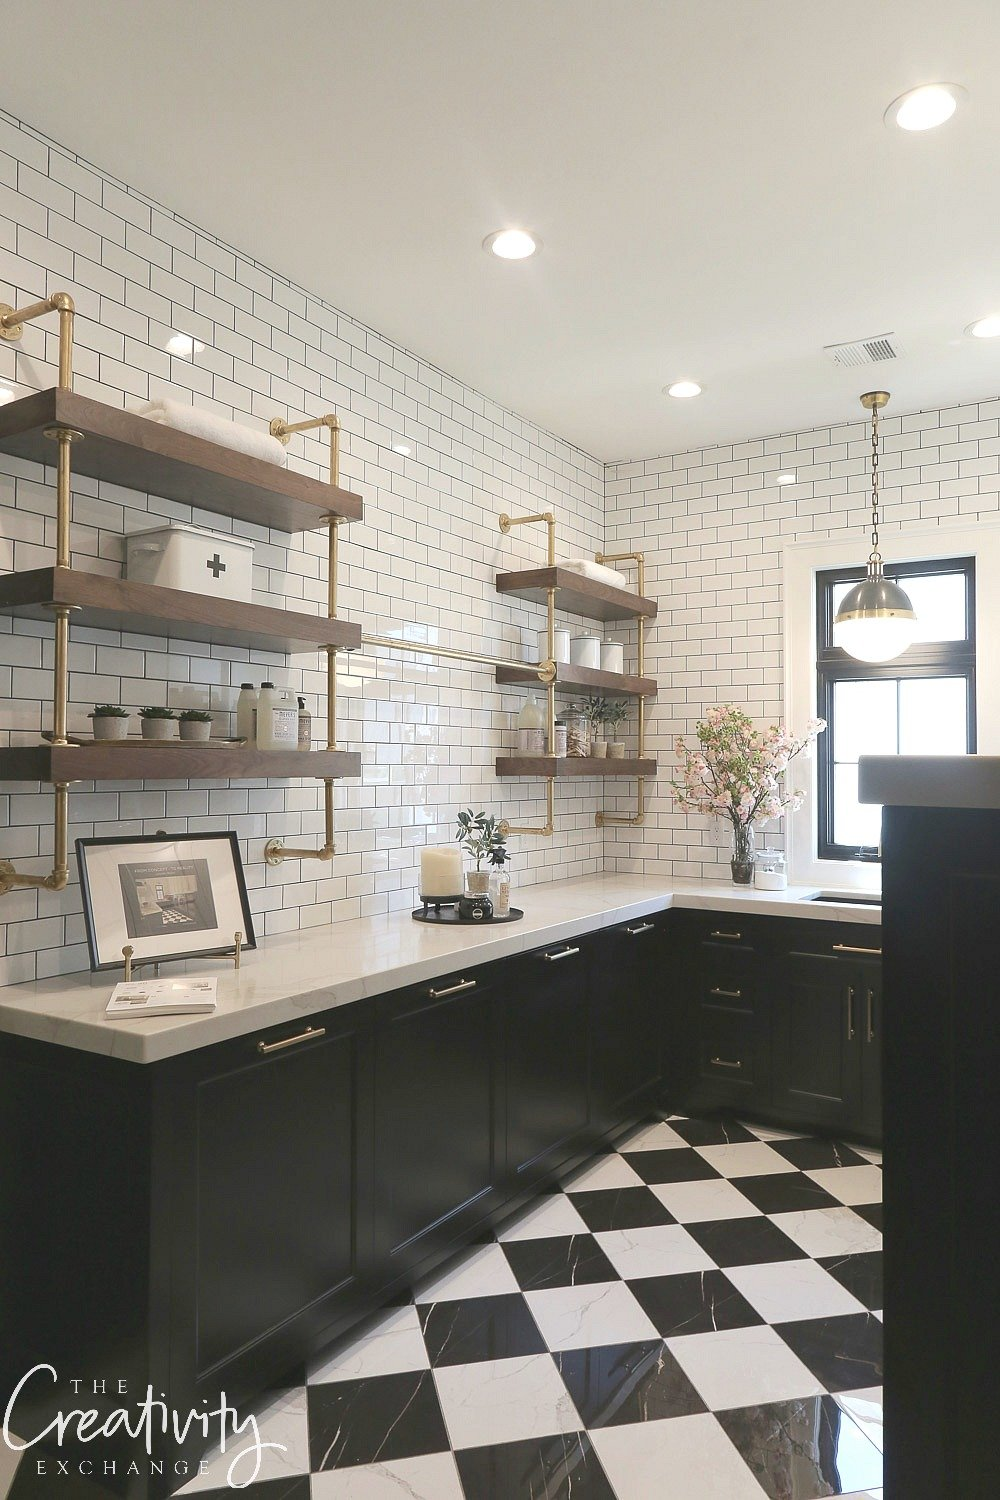 Black and white laundry room with open shelving